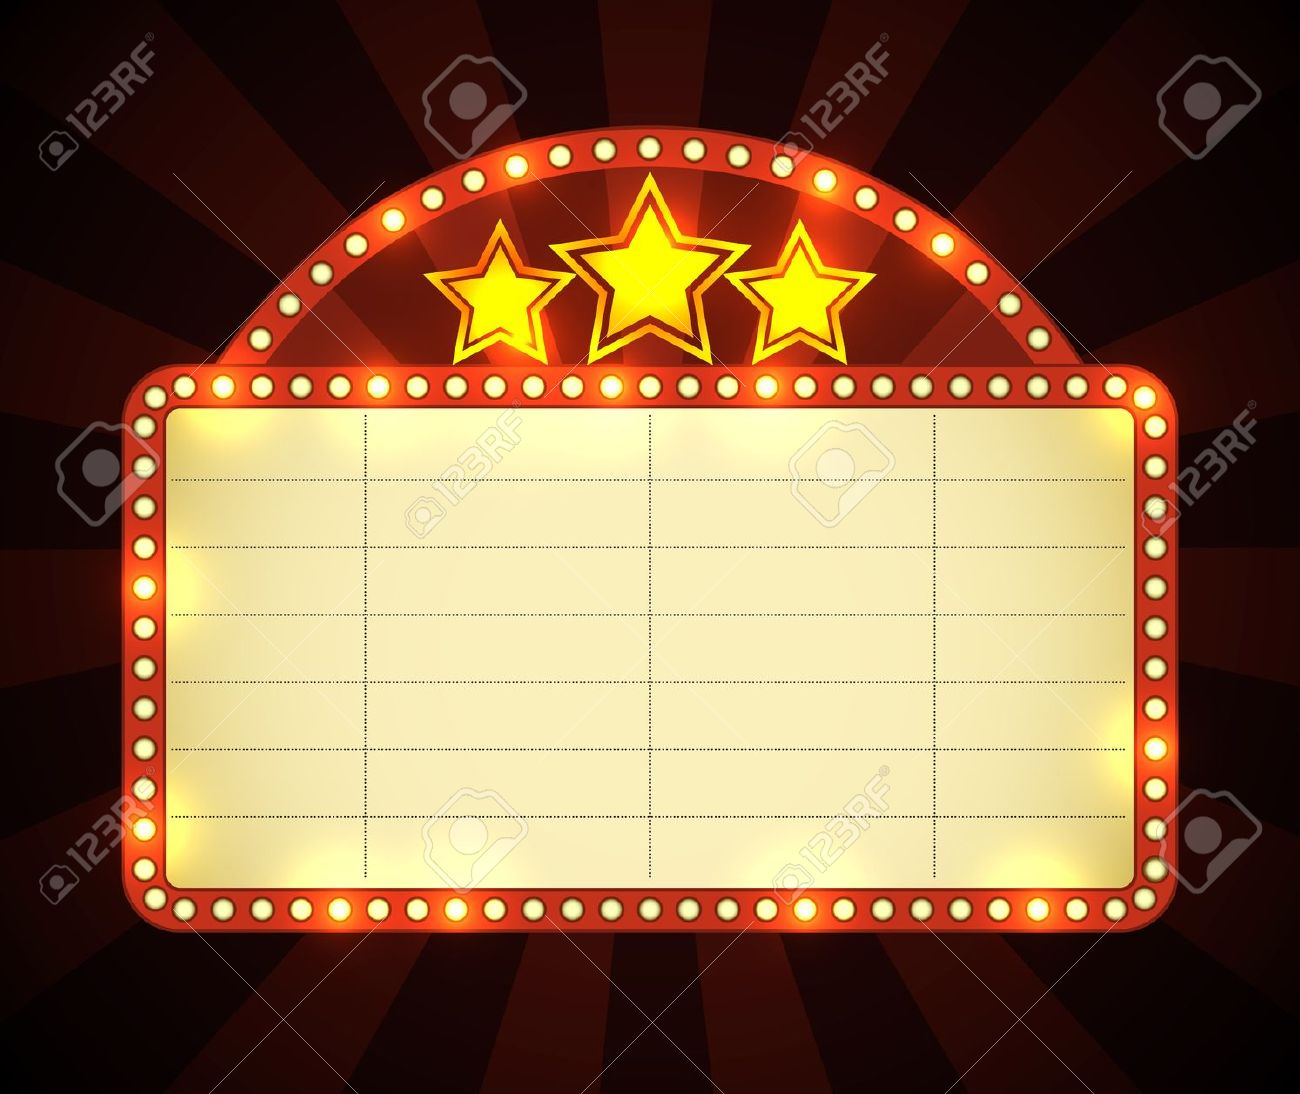 Neon Sign clipart broadway theatre Glowing Cinema Royalty  Free